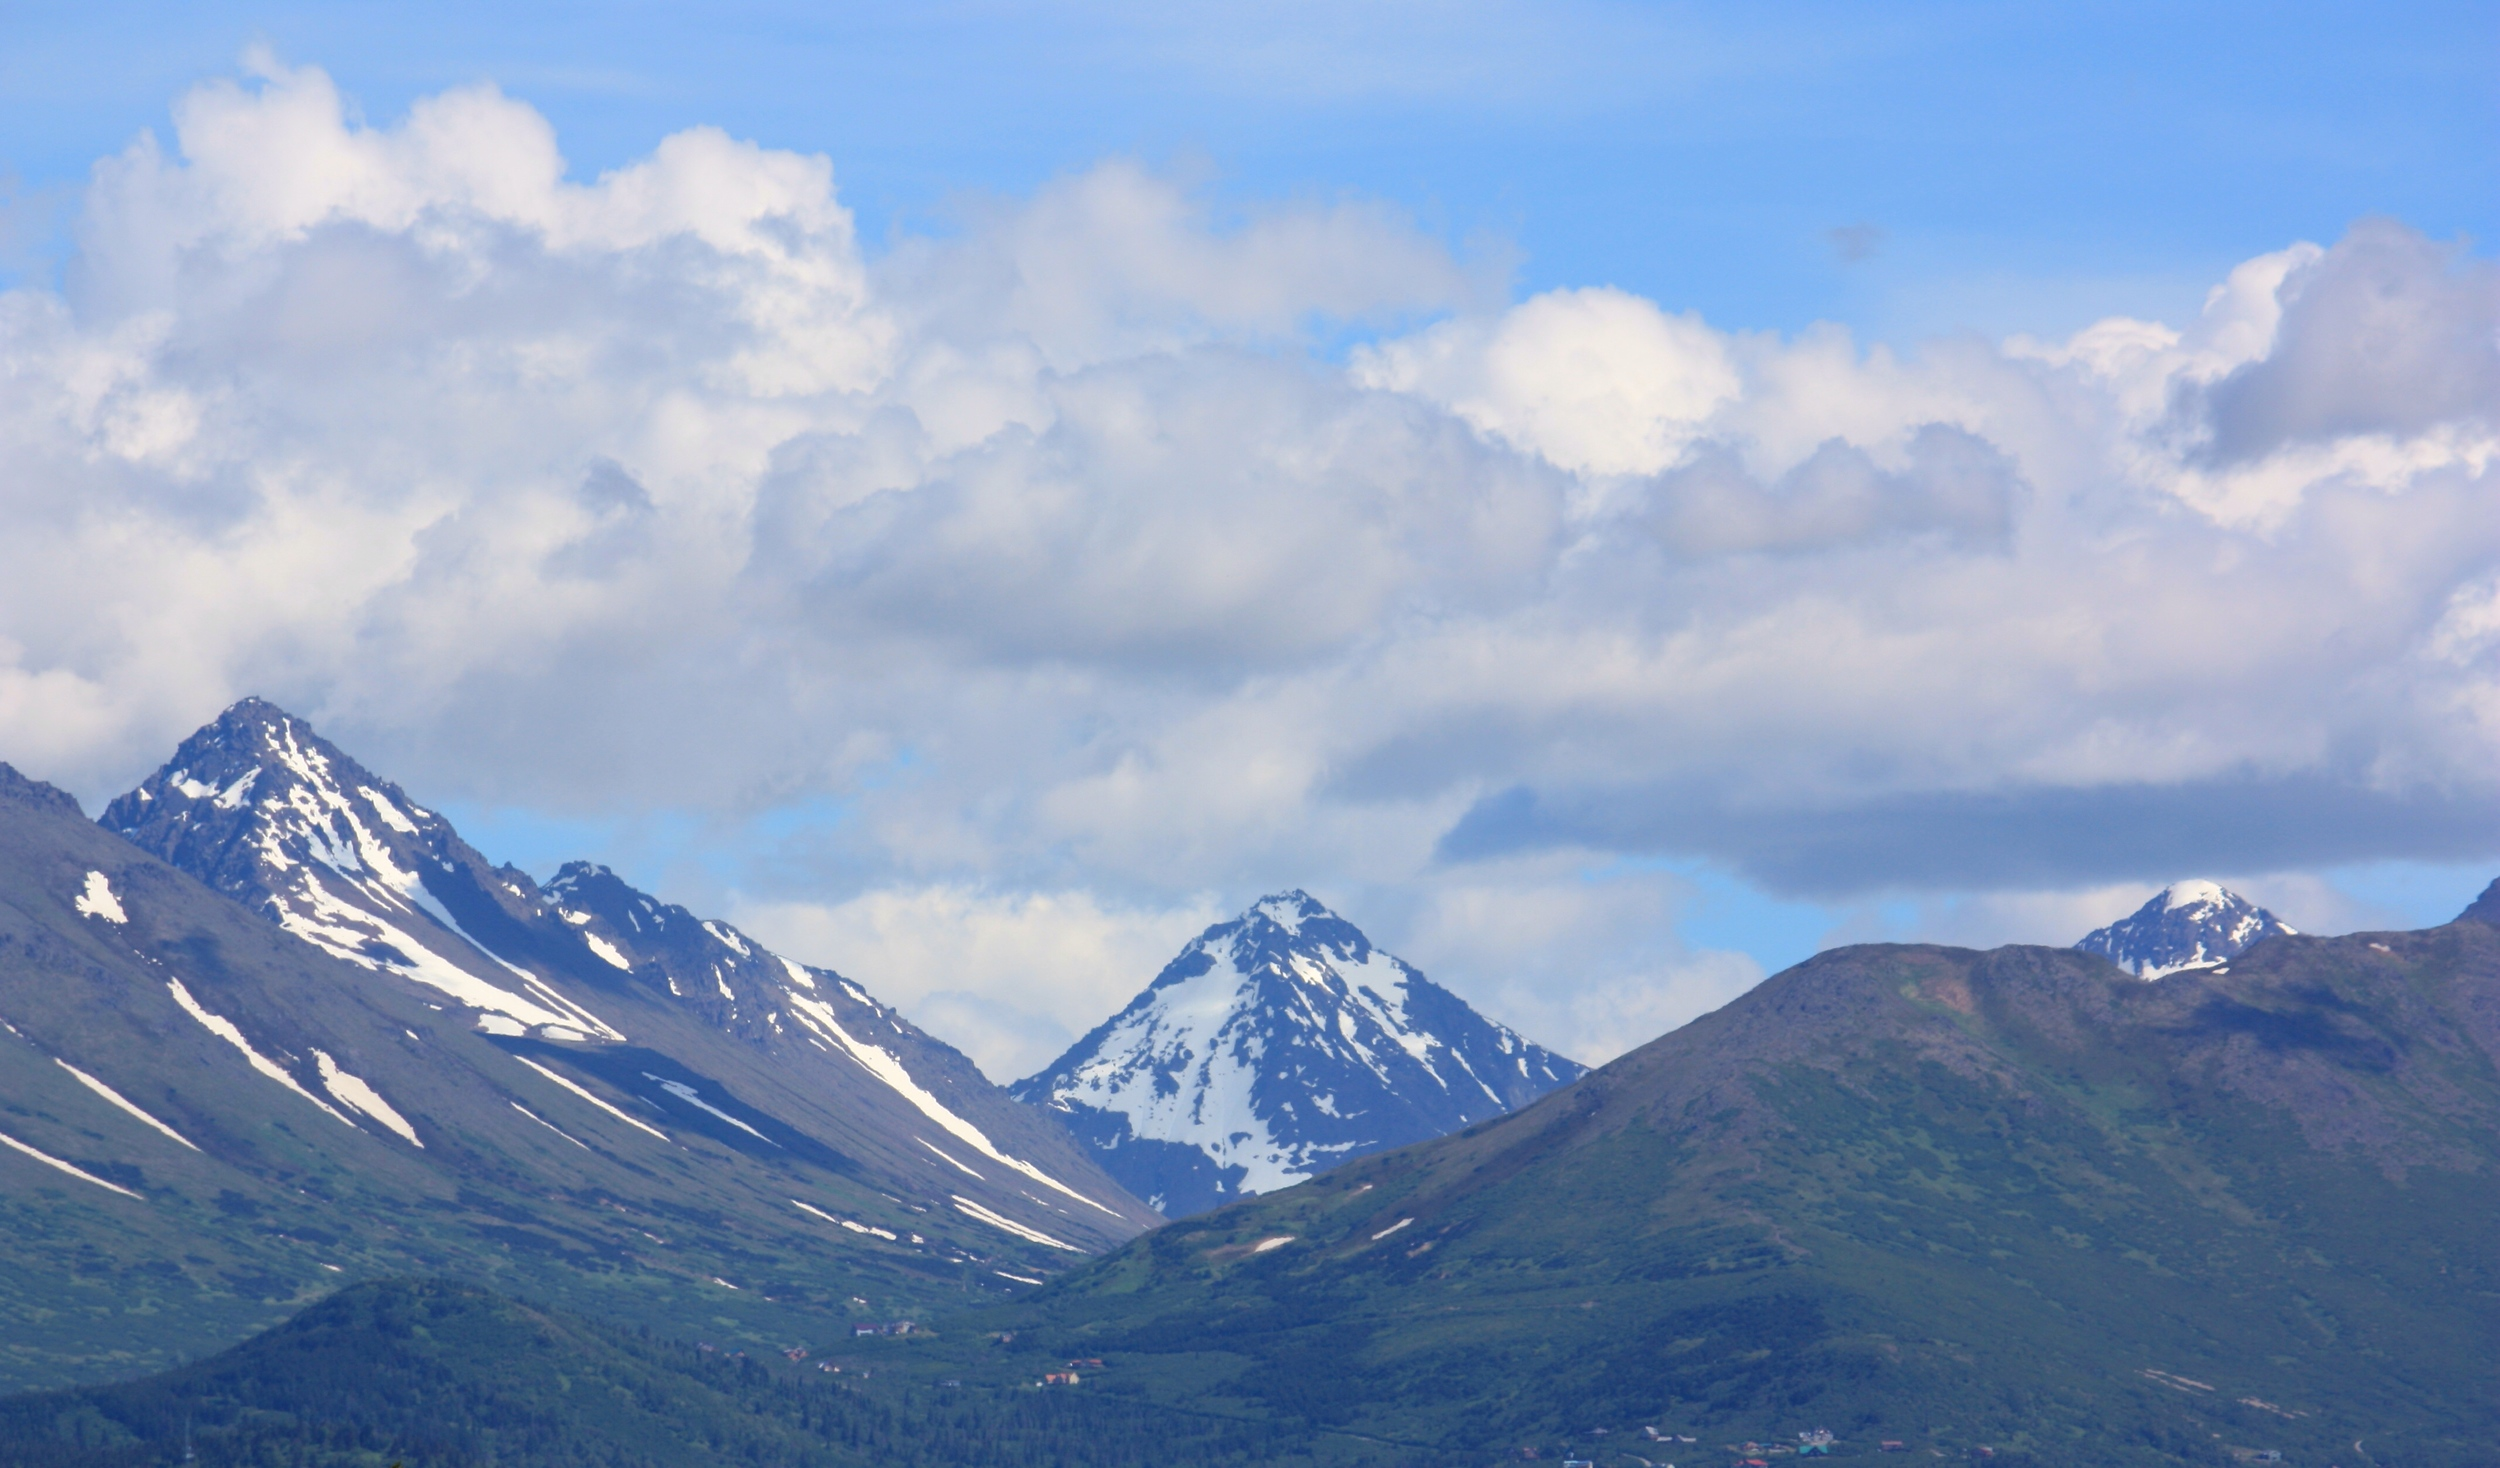 This is what you see every morning when you wake up in Anchorage. This was taken a few days ago. The only real difference in the last 50 years is the number of homes on the mountains.